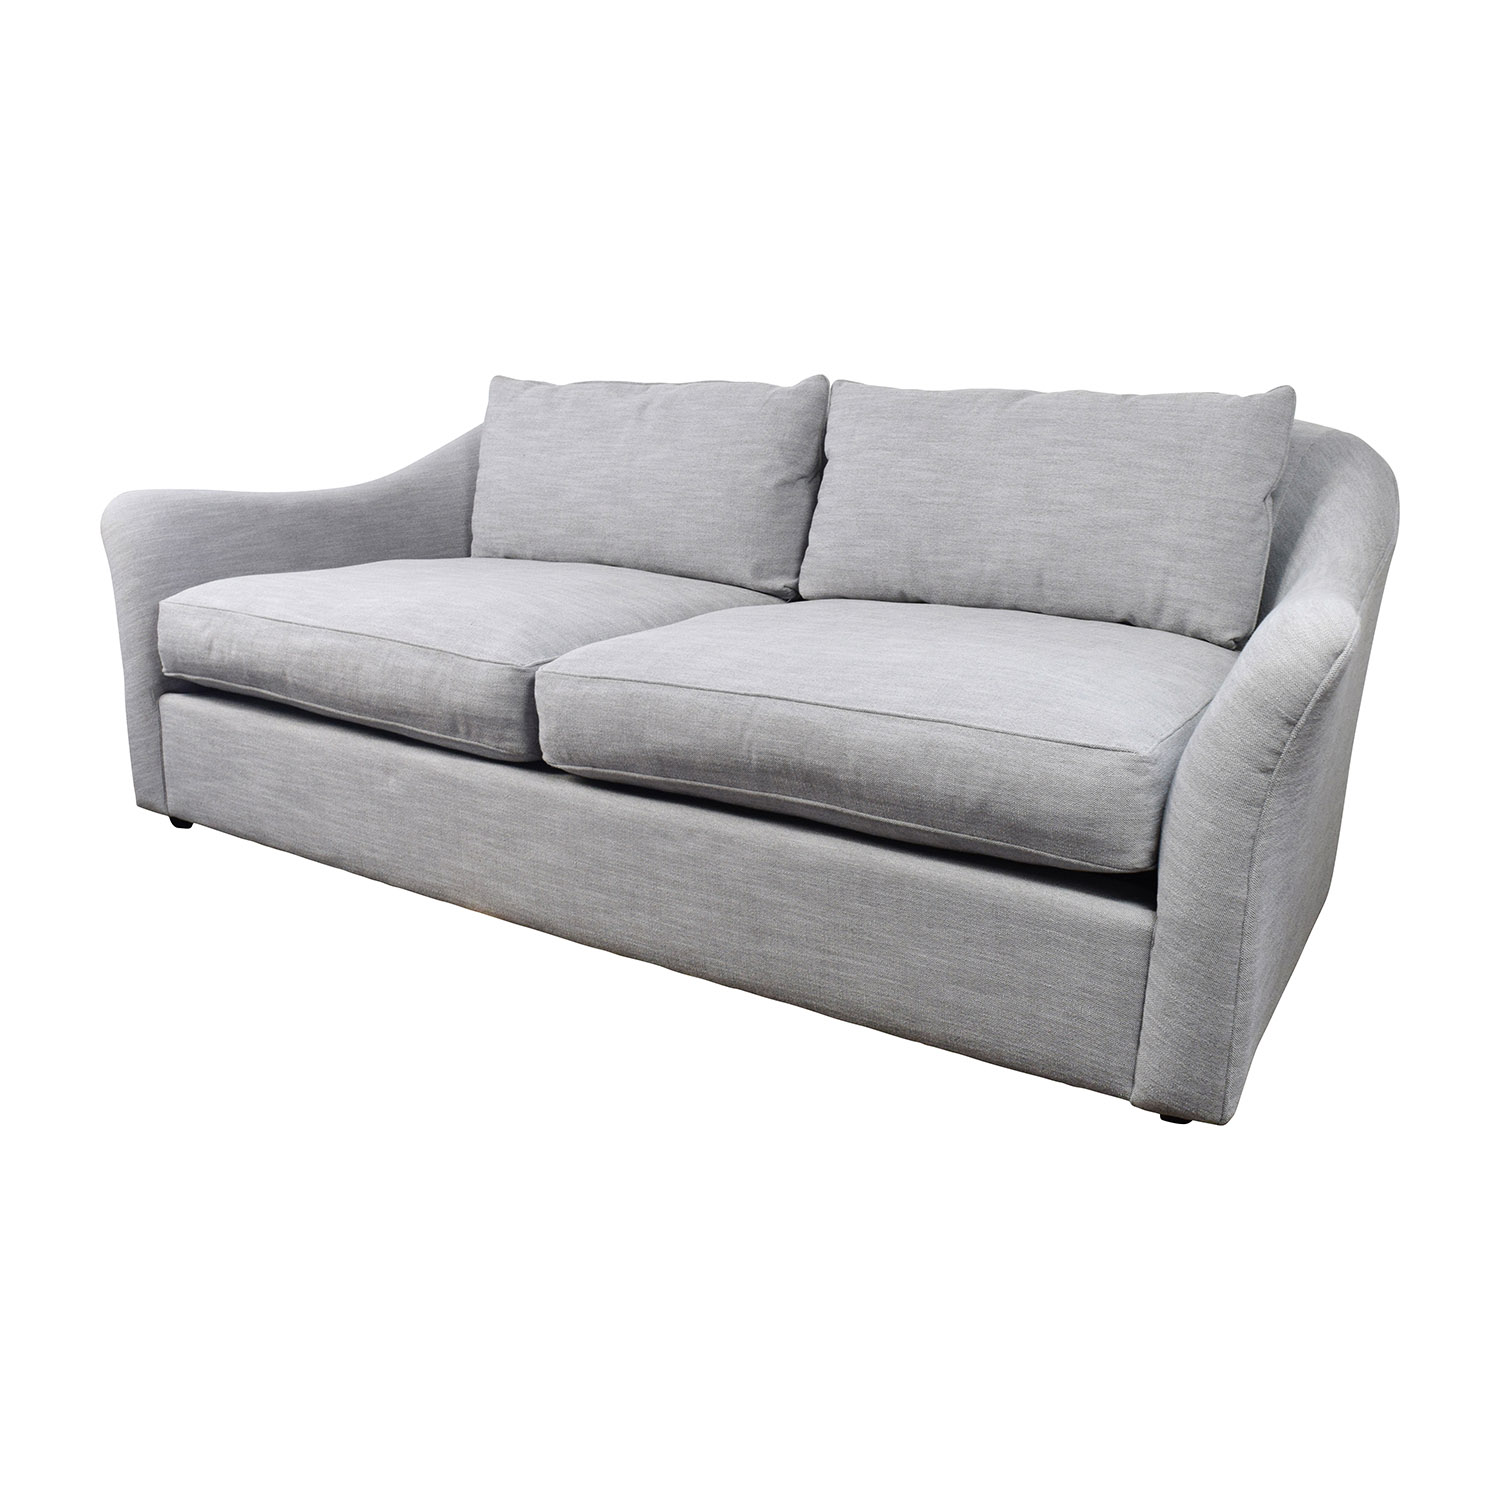 westelm sofa bed cleaning feather cushions delaney 30 off west elm grey sofas thesofa